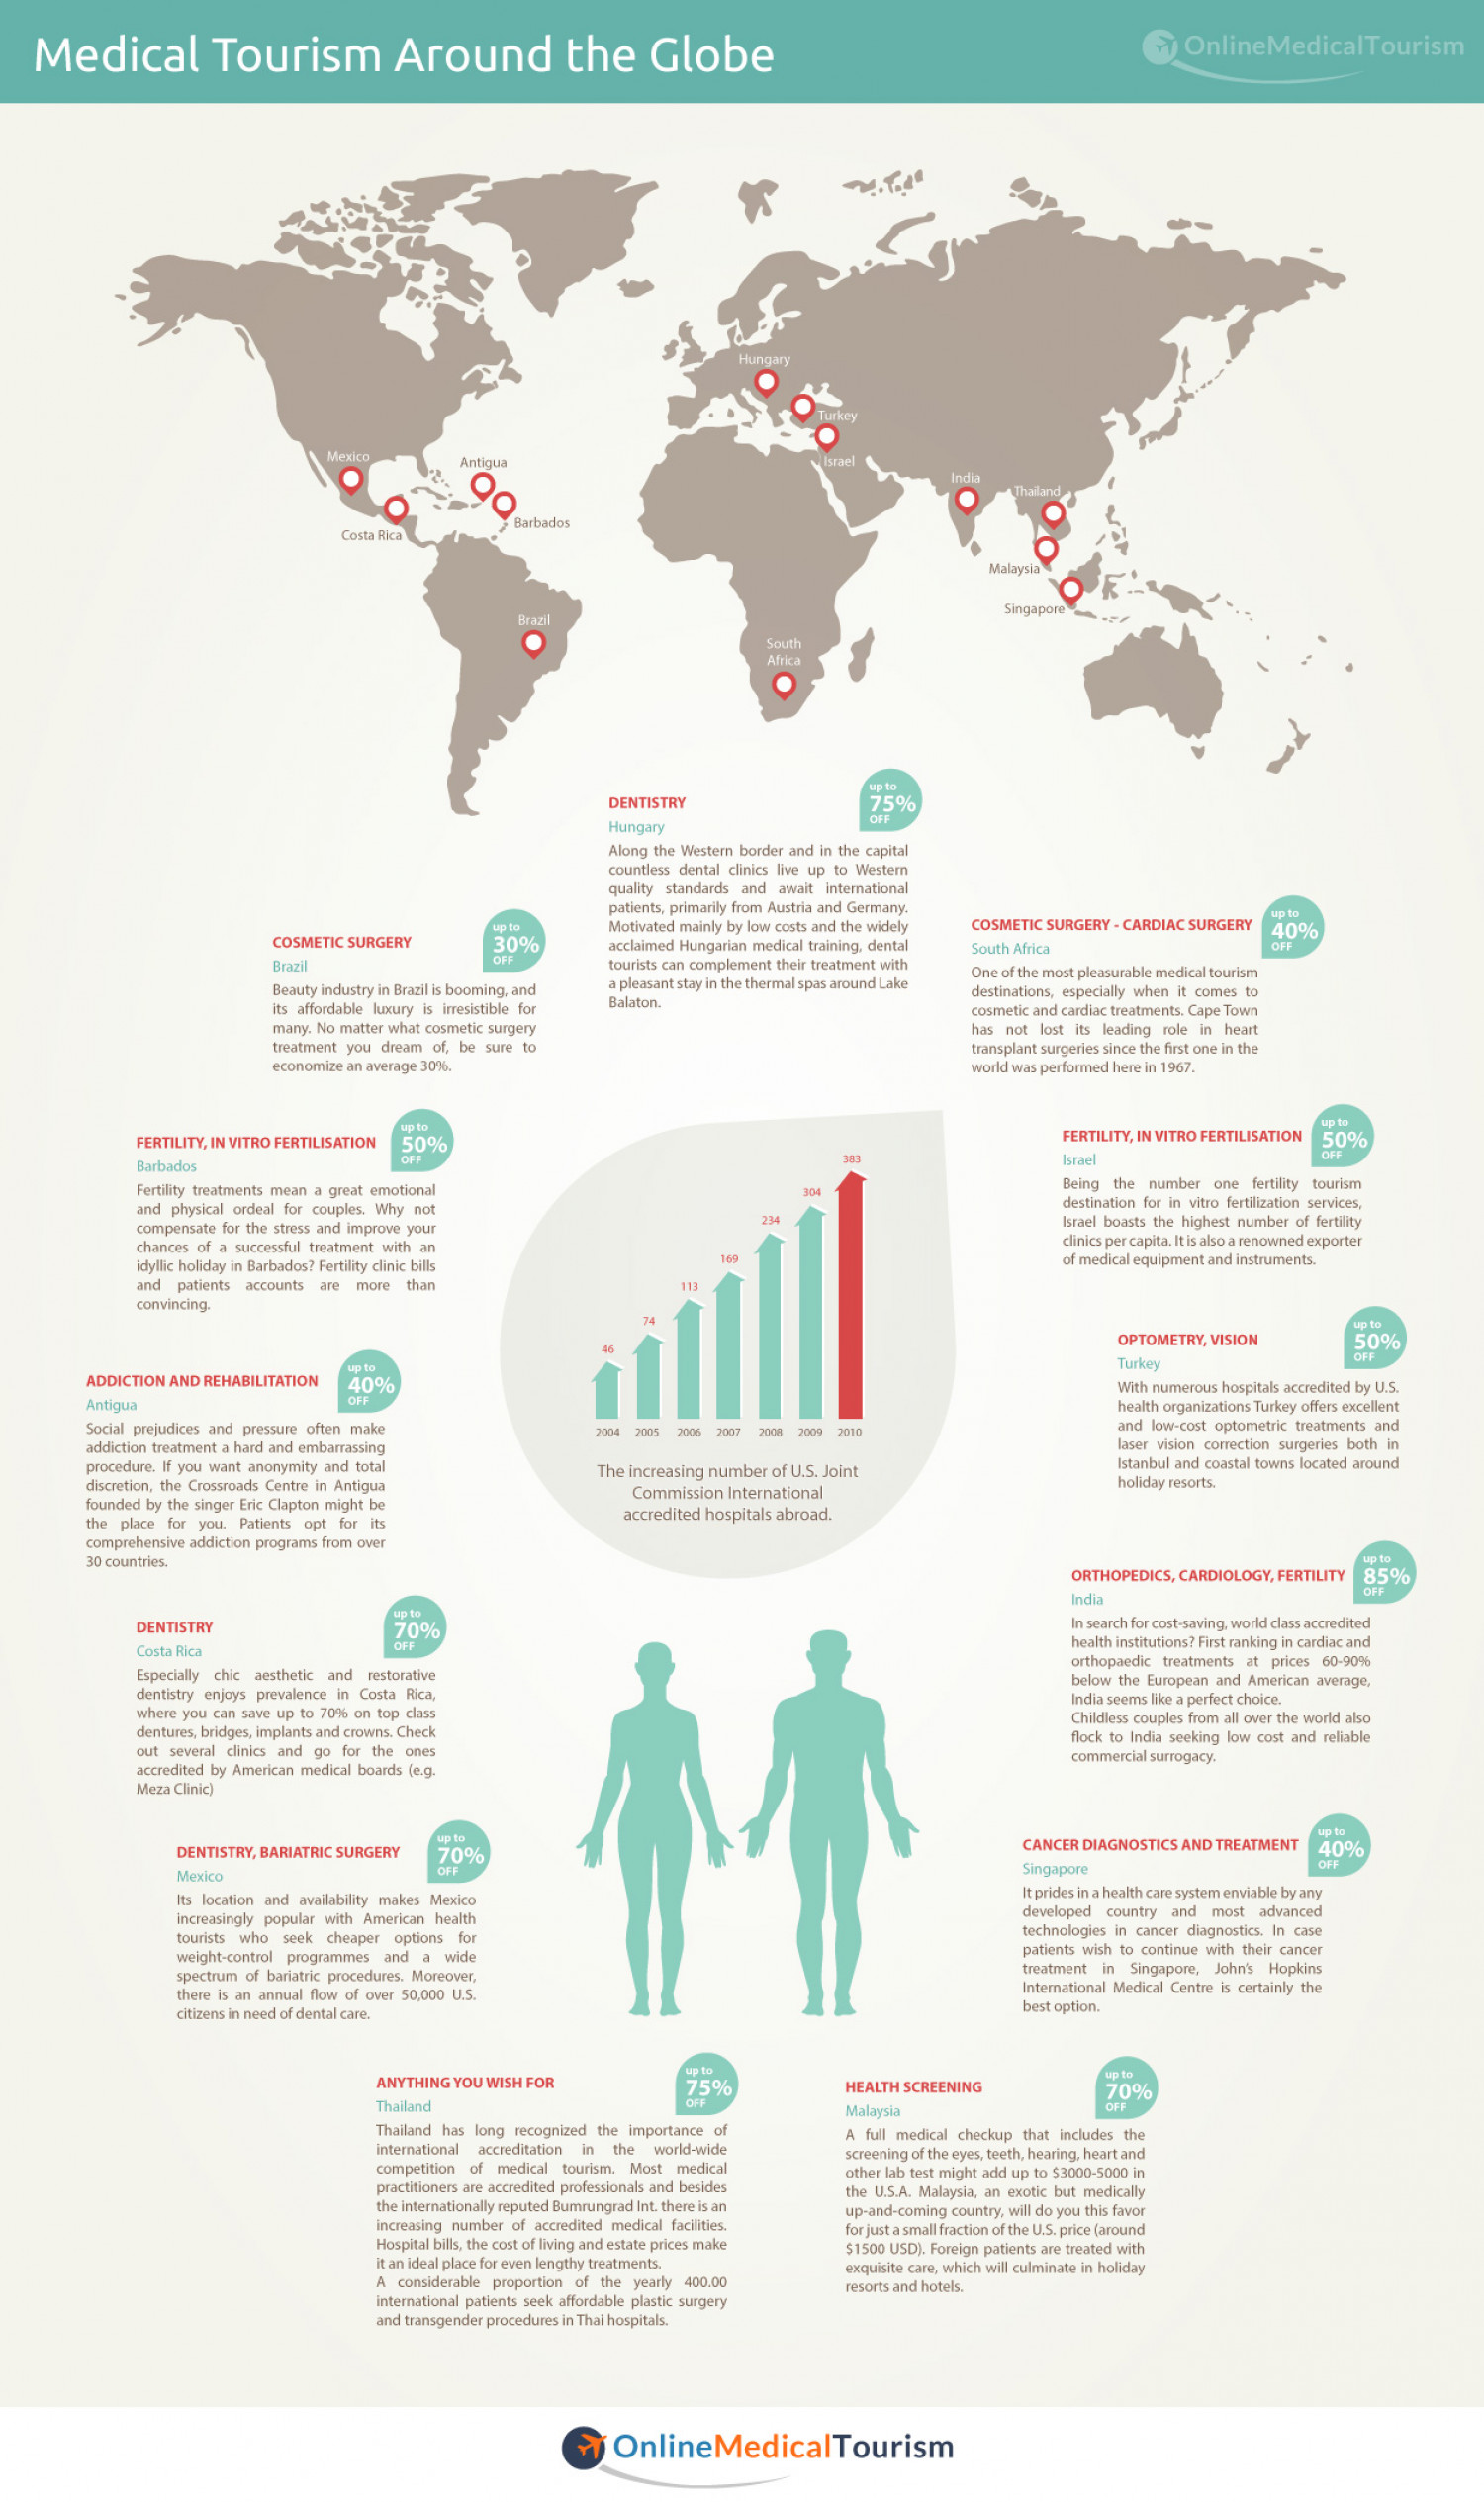 Medical Tourism around the Globe Infographic